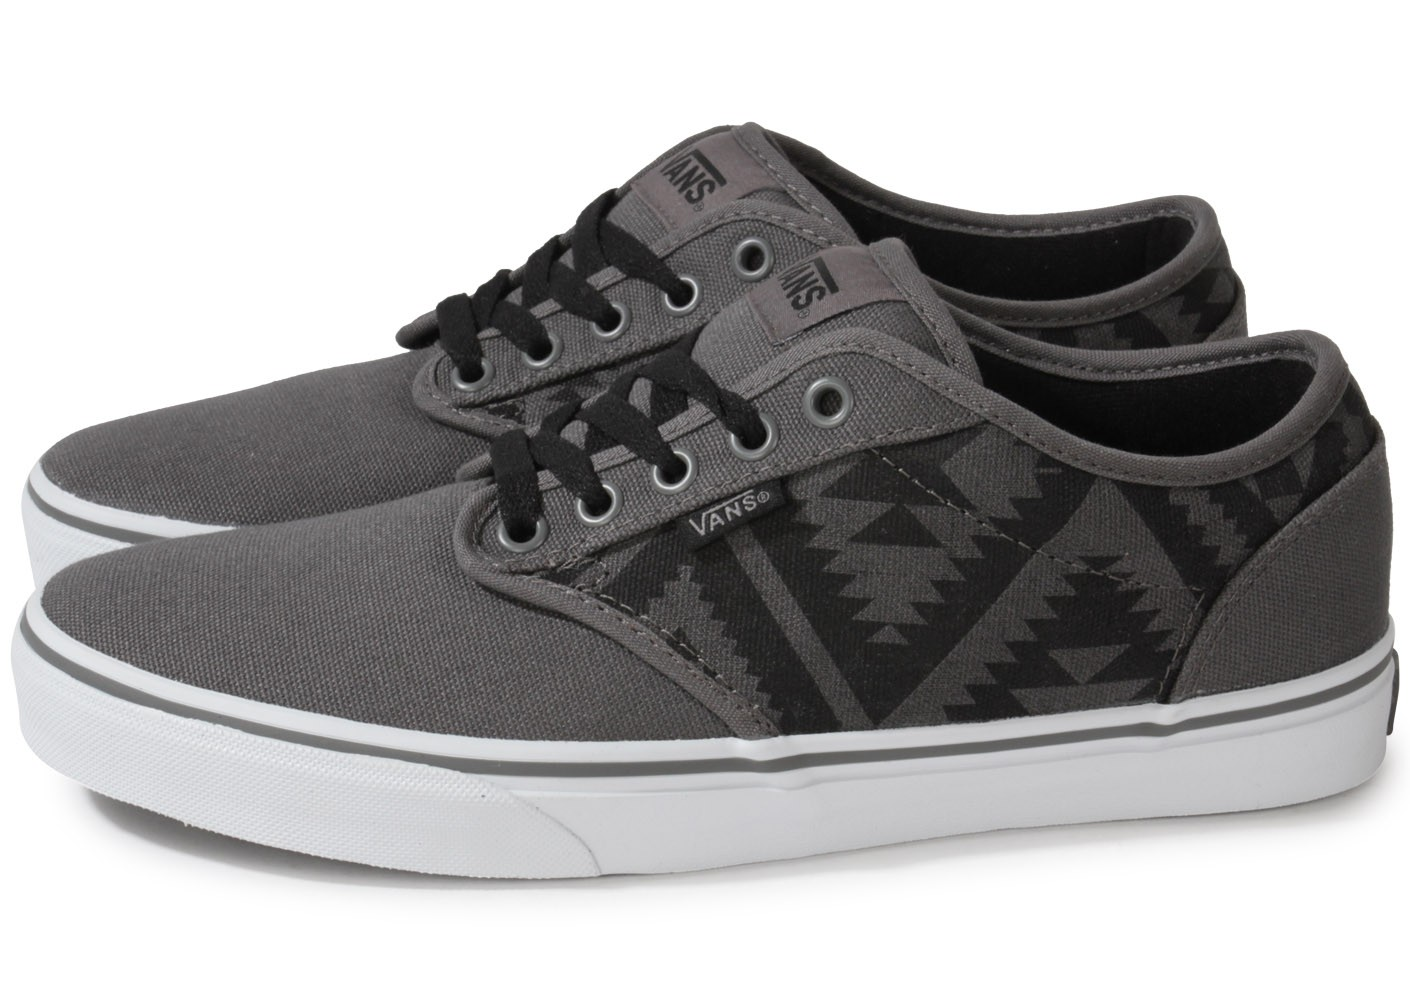 Vans Atwood Native Grise - Chaussures Baskets homme - Chausport